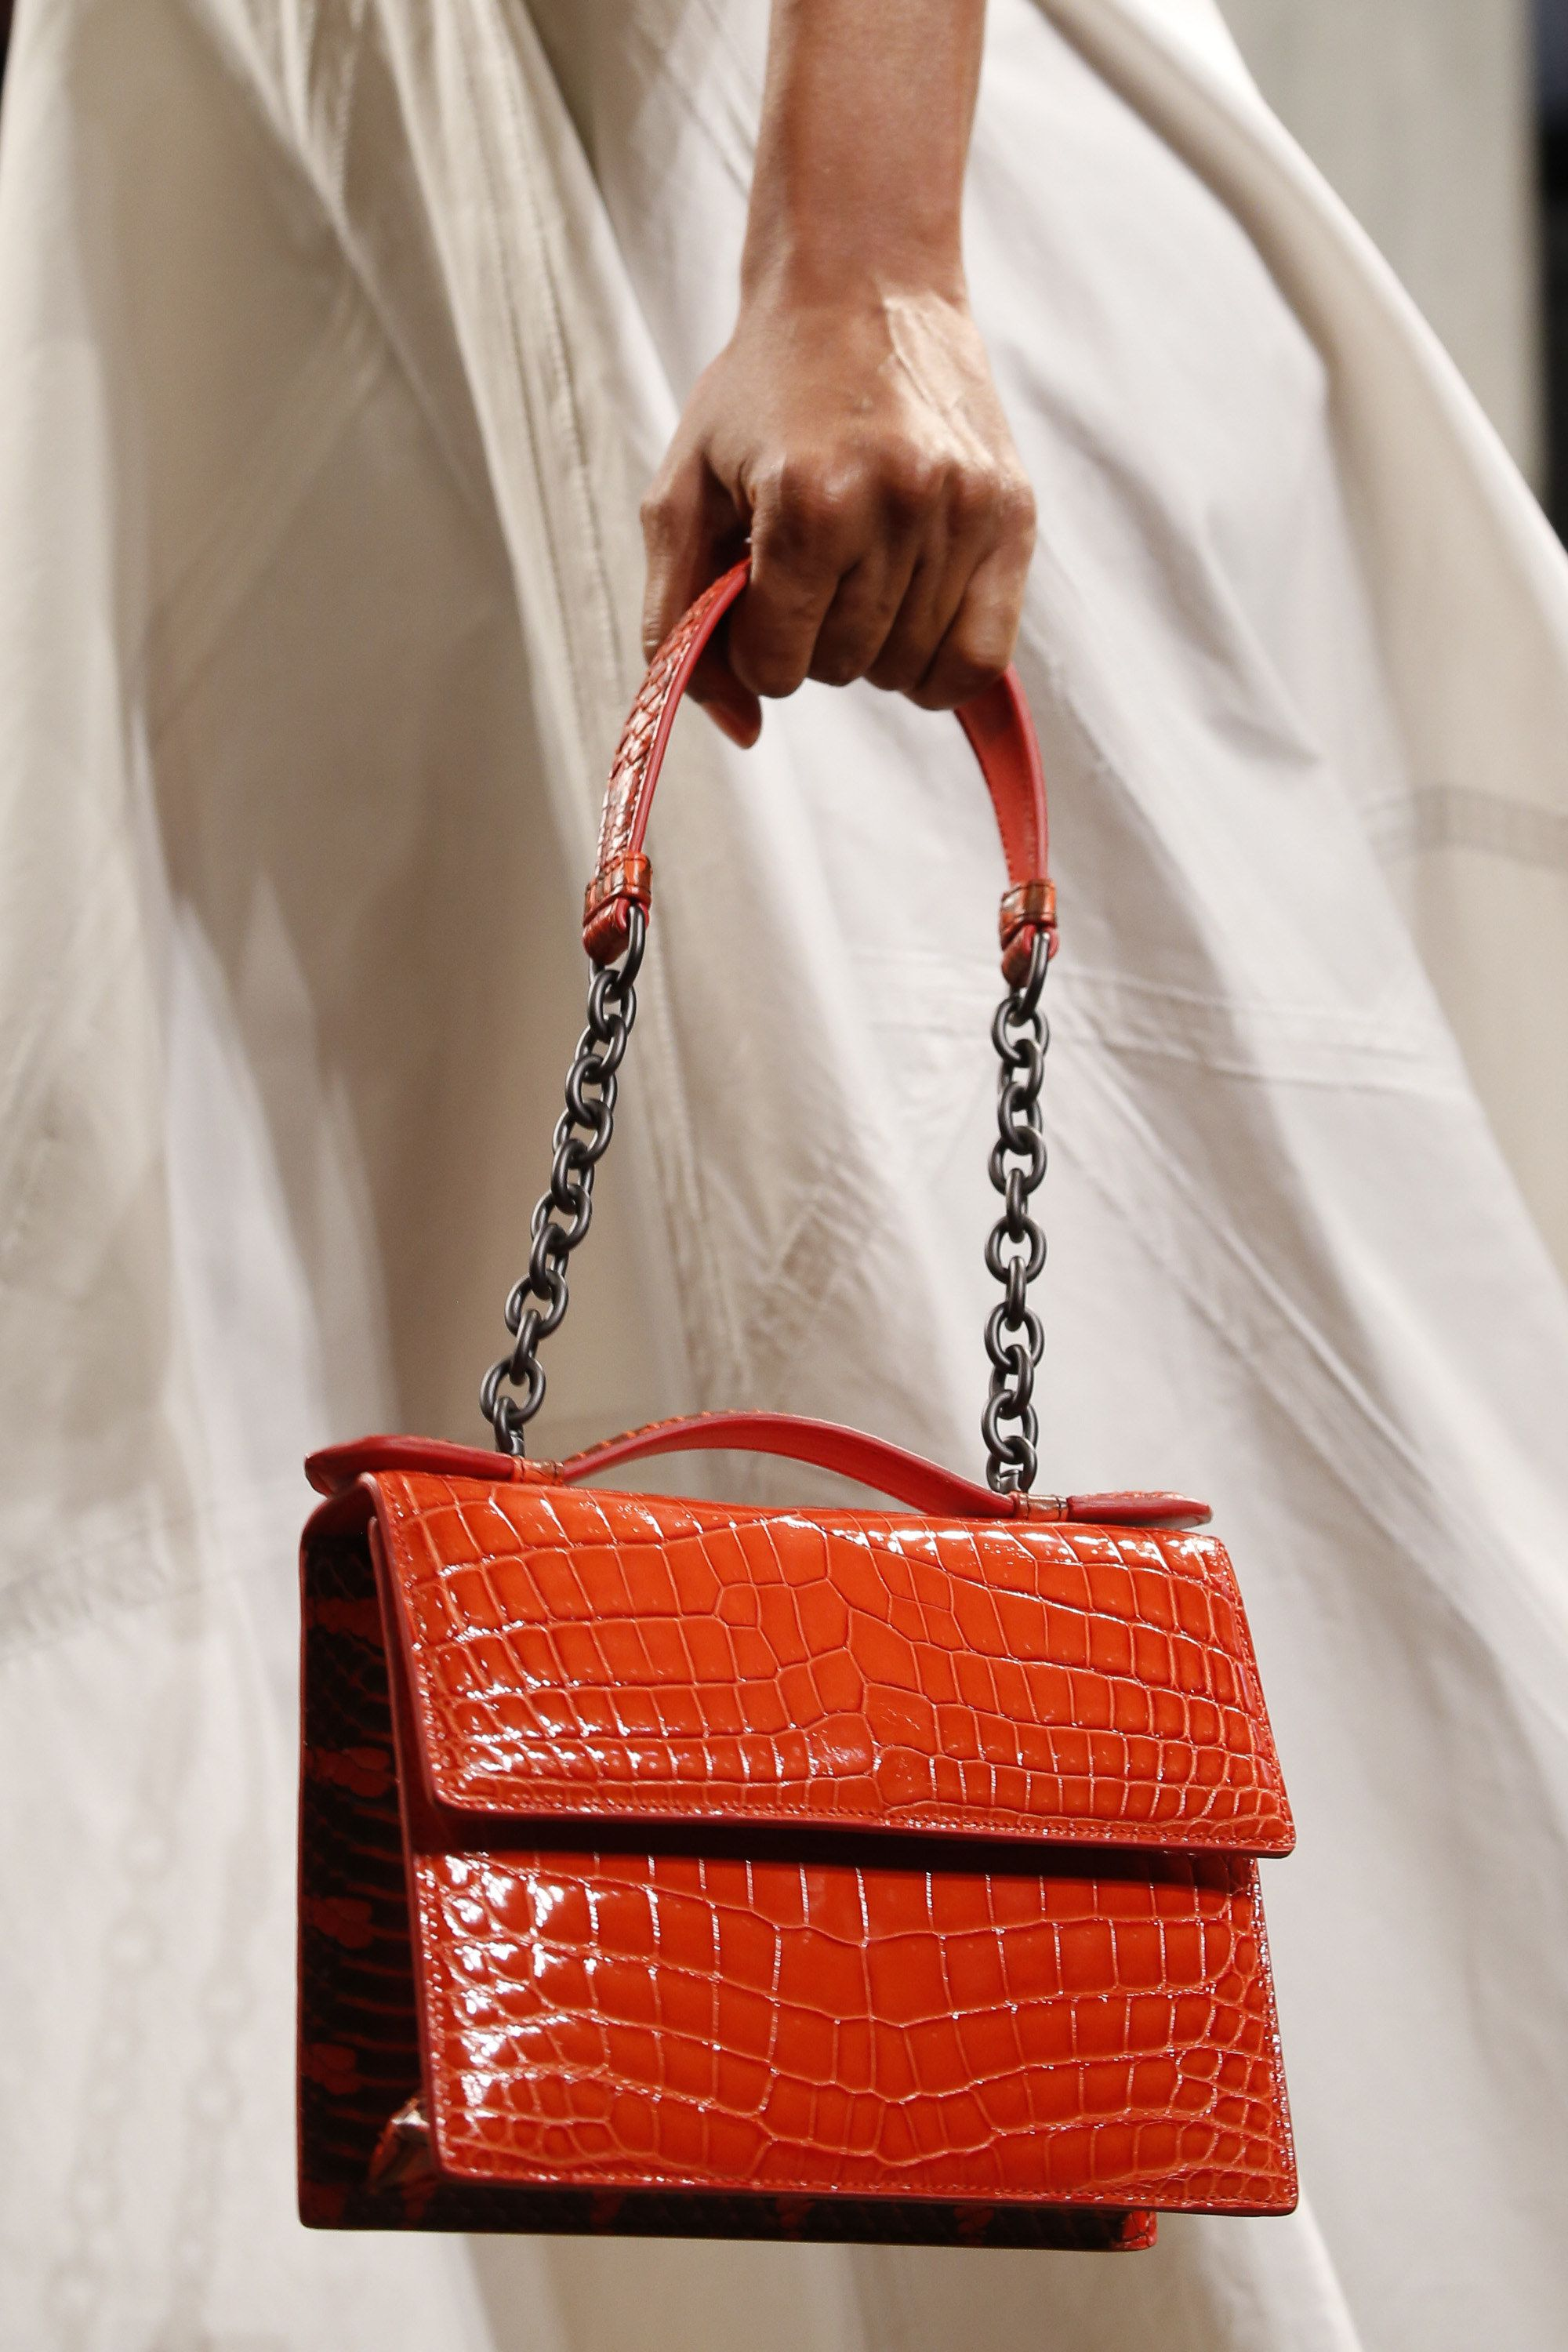 4c61c6288e60 Bottega Veneta Spring 2016 Ready-to-Wear Accessories Photos - Vogue